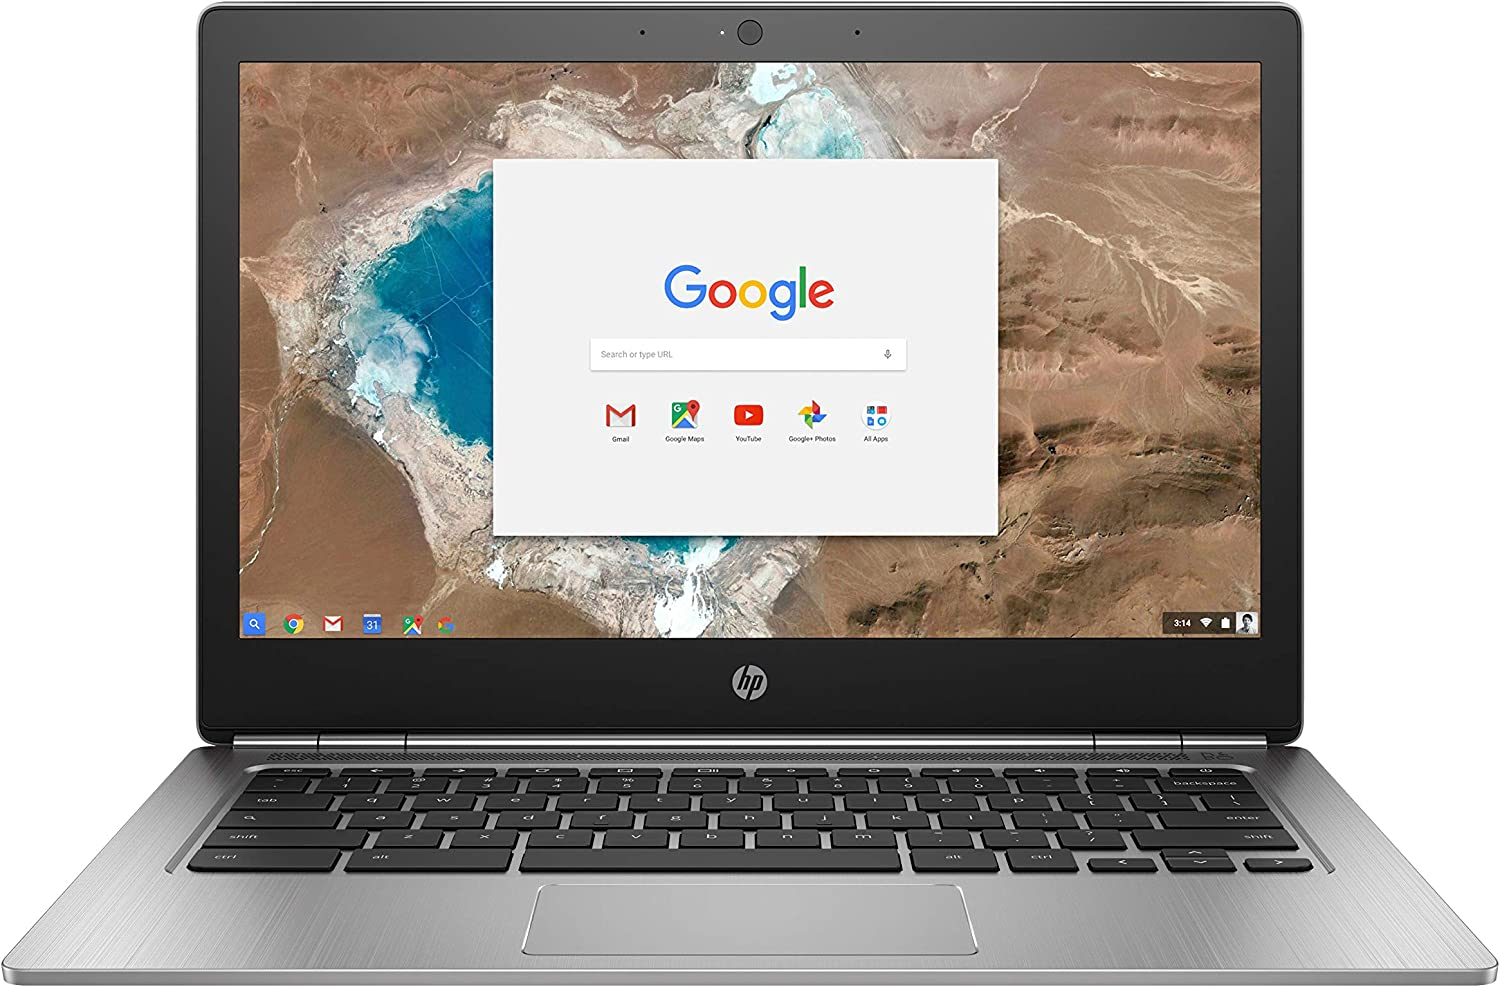 HP Business W0T01UT Chromebook 13 G1 8G 32GB